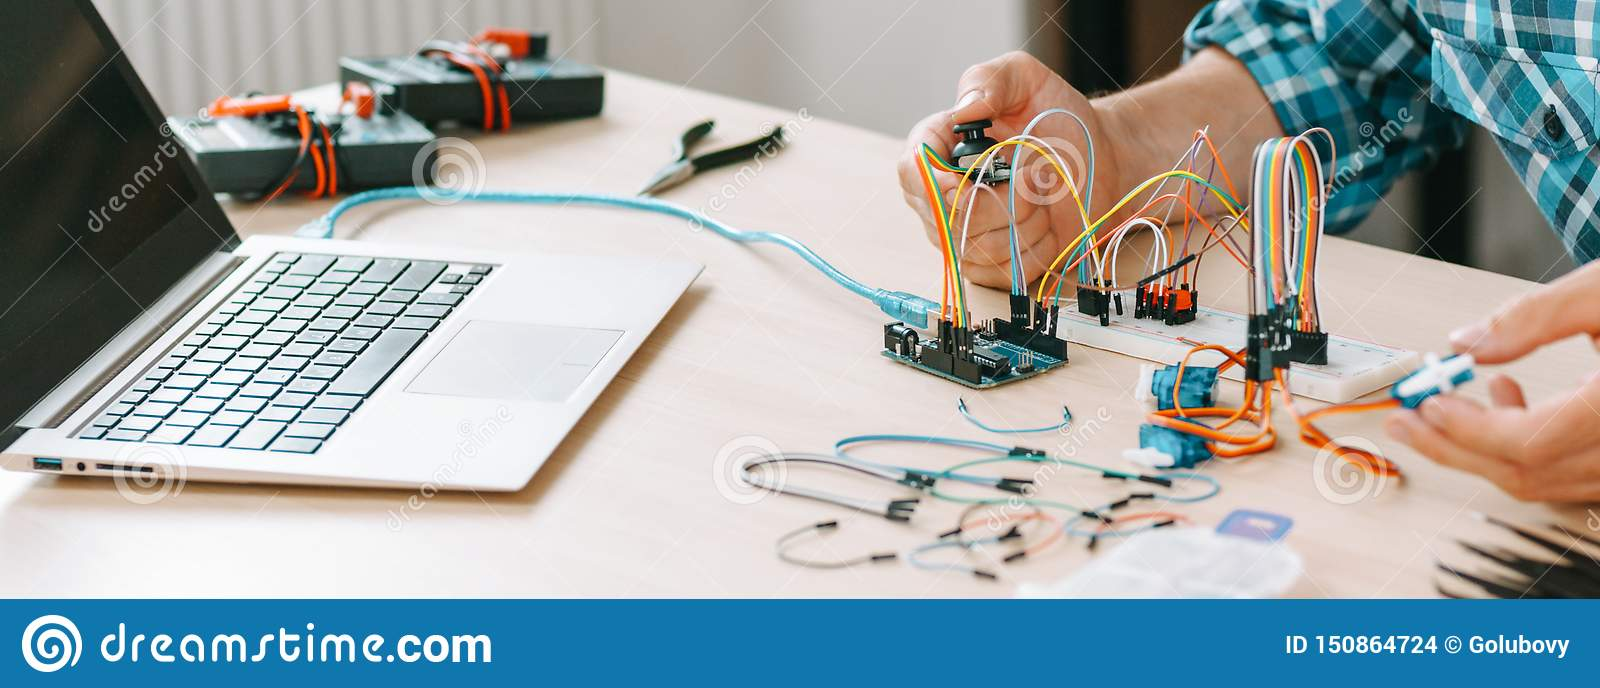 Electronic Engineering Experiment Technician Test Stock Photo - Image of leisure, computer